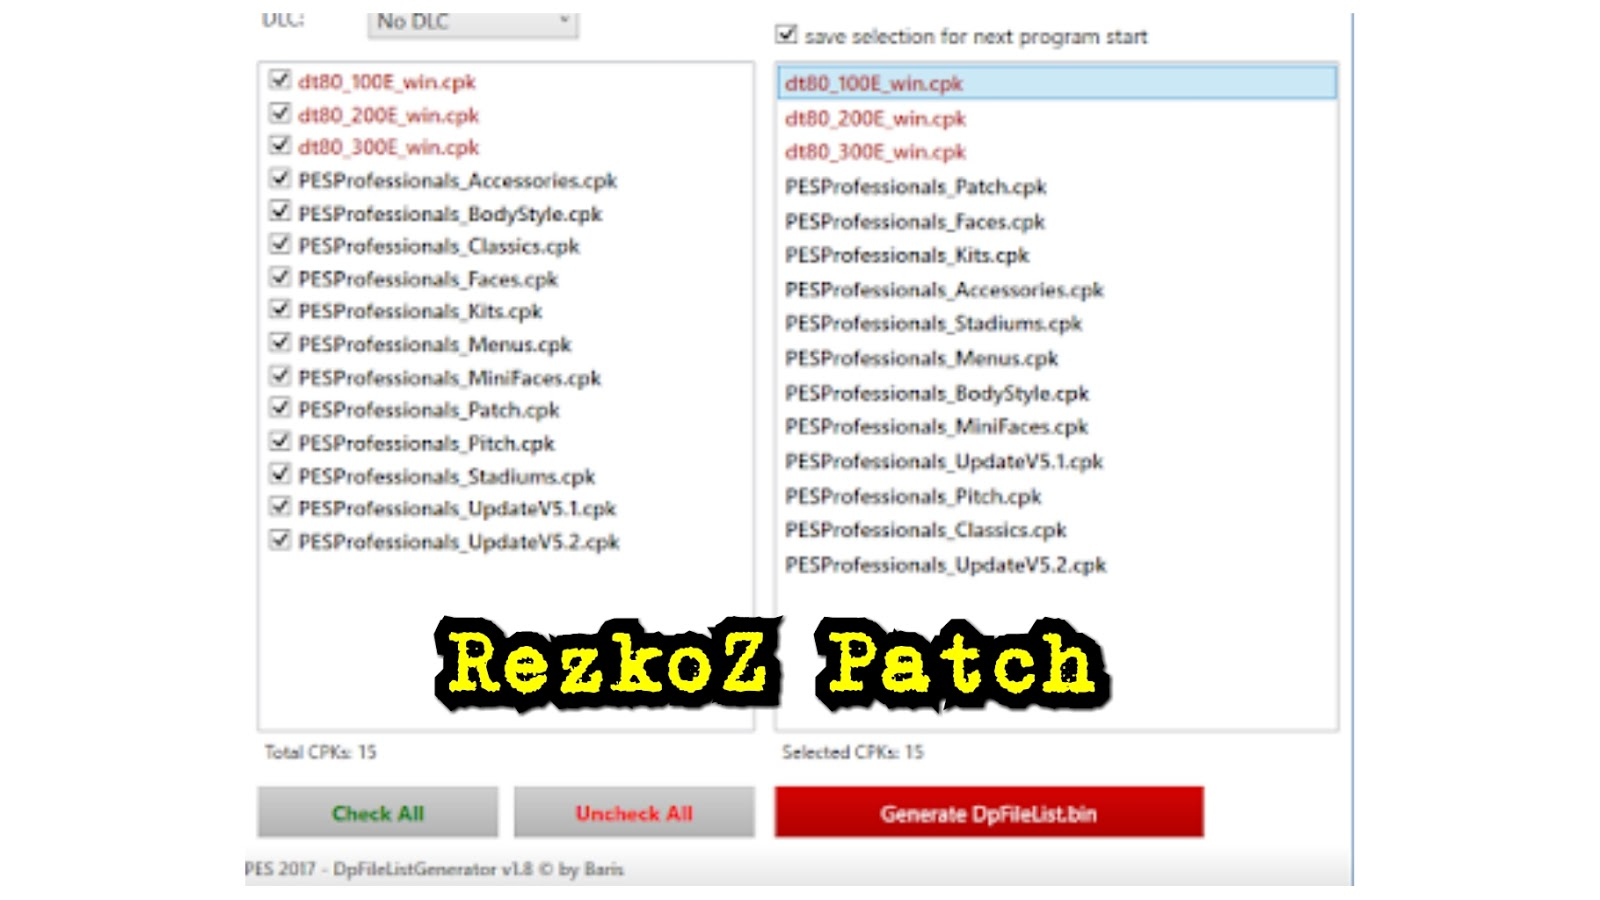 PES 2017 Professionals Patch Update V5 2 + Fix